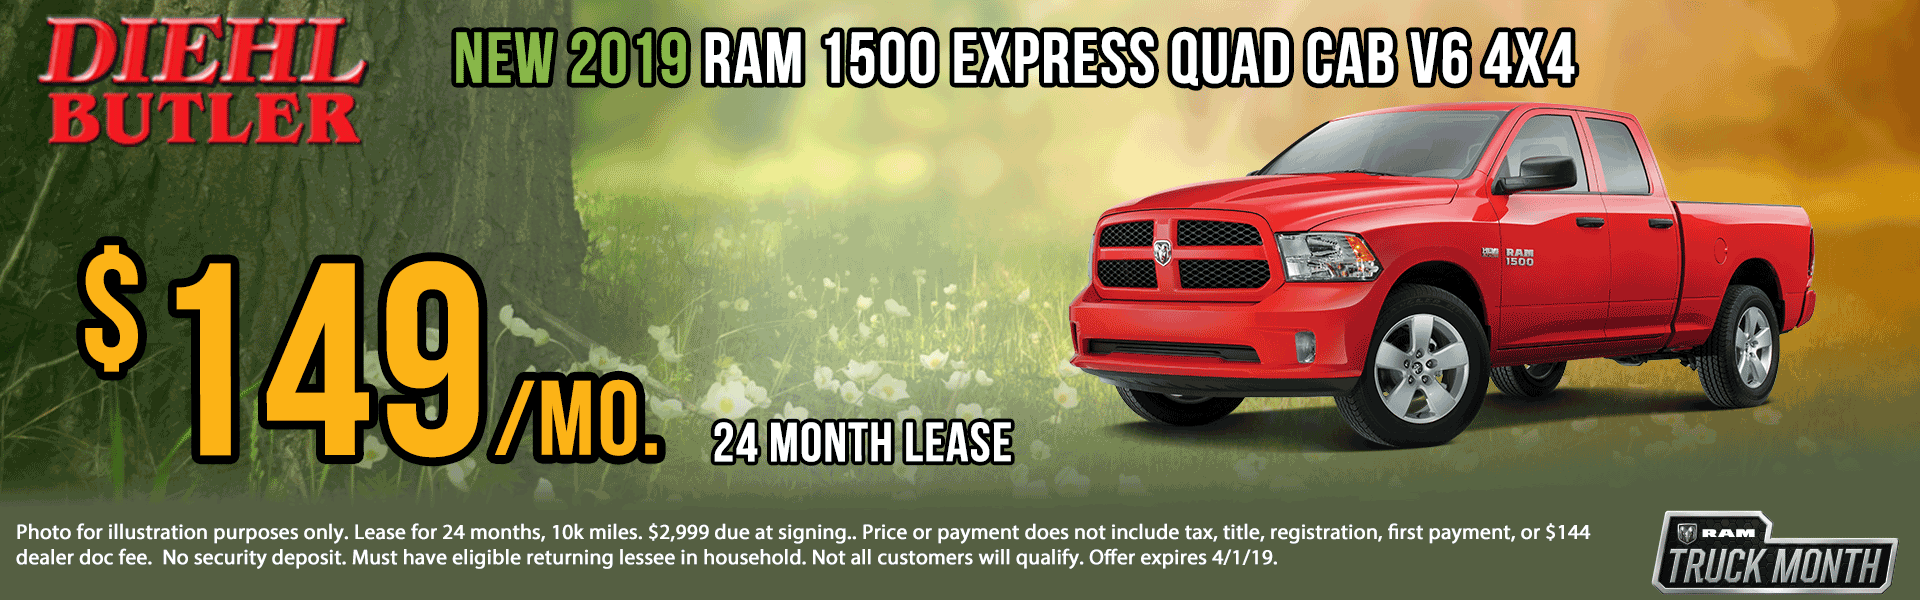 Diehl of Butler. Chrysler Jeep Dodge Ram Toyota Volkswagen. Butler, PA. New and Used sales, service, body shop, reconditioning, parts and accessories. NEW 2019 RAM 1500 CLASSIC EXPRESS QUAD CAB® 4X4 6'4